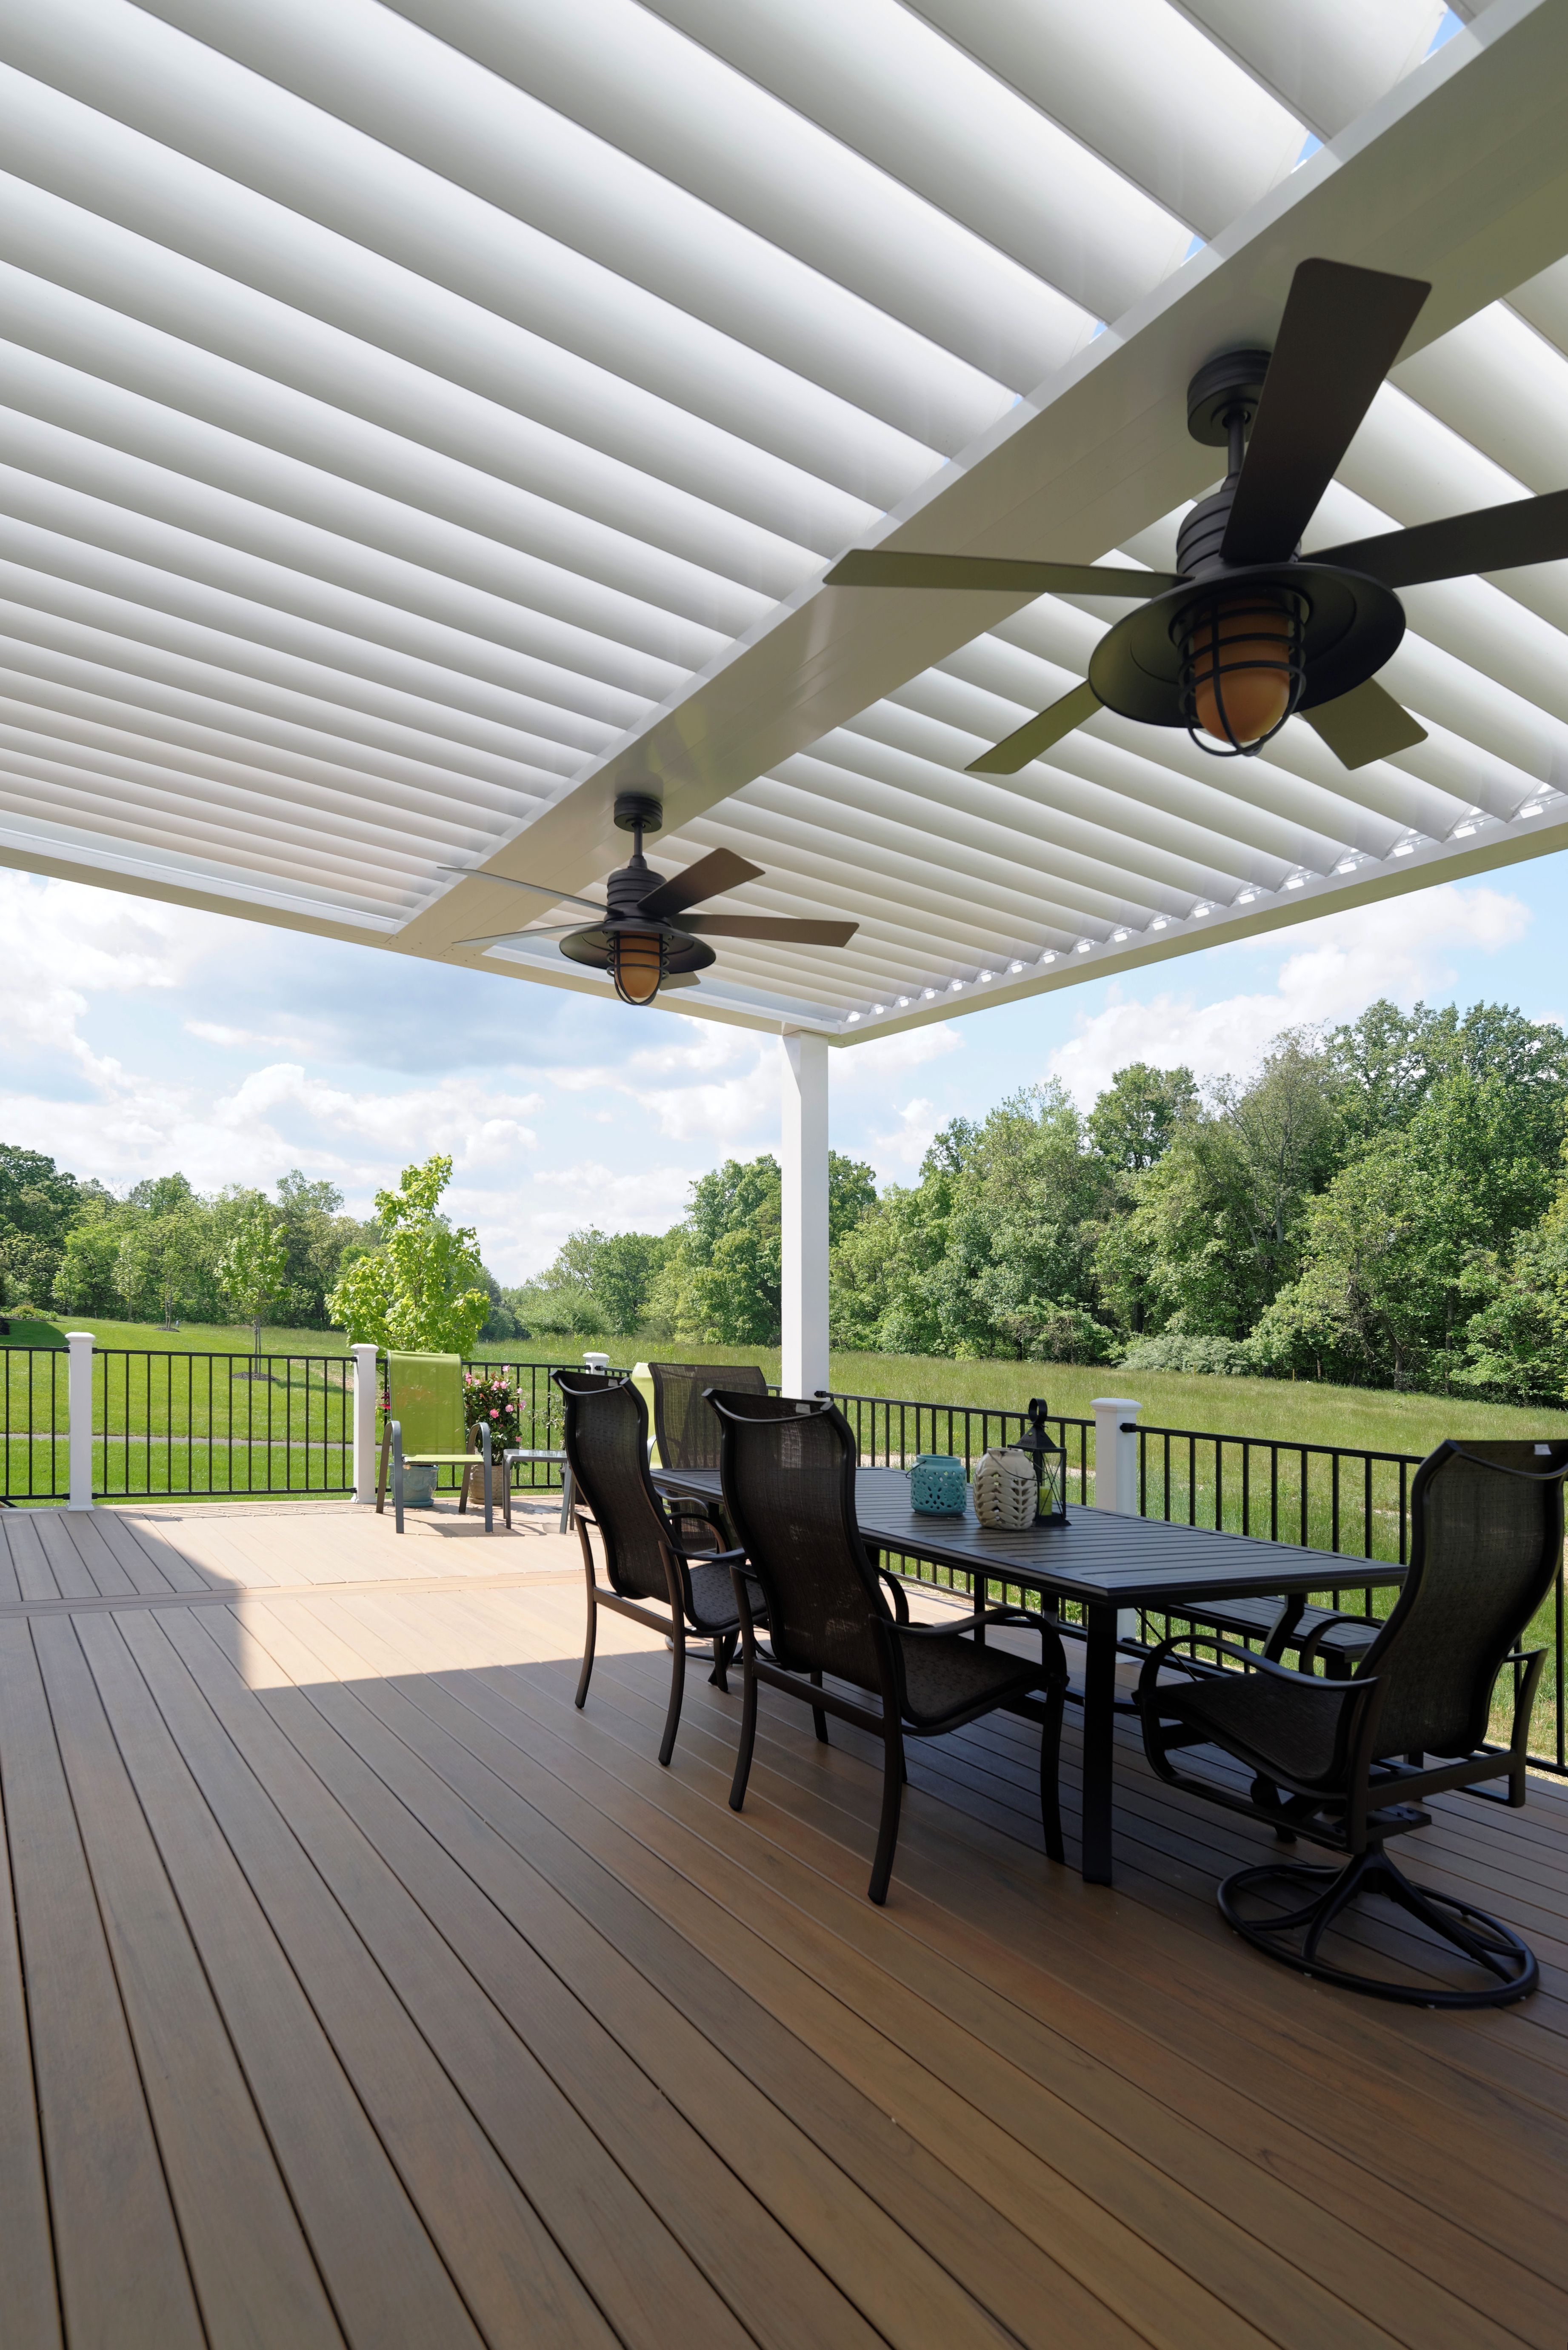 equinox adjustable louvered roof -- open the louvers for sun